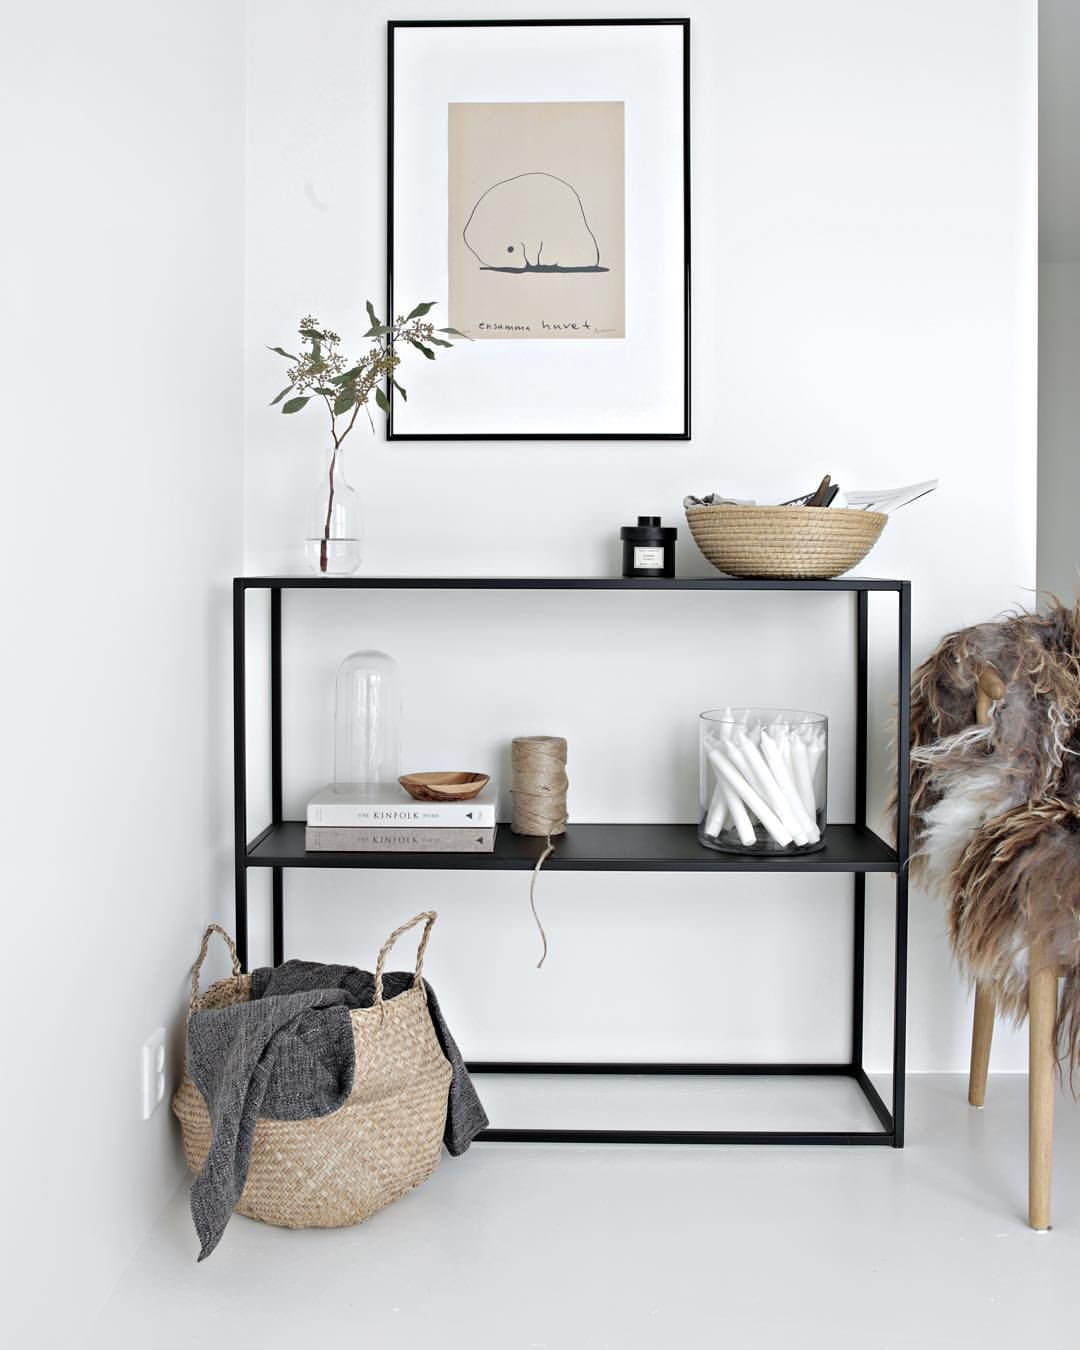 "Nina Holst op Instagram: ""More of my new shelf from @domo_design on the blog today #linkinbio #stylizimoshop #domodesign #newin"""